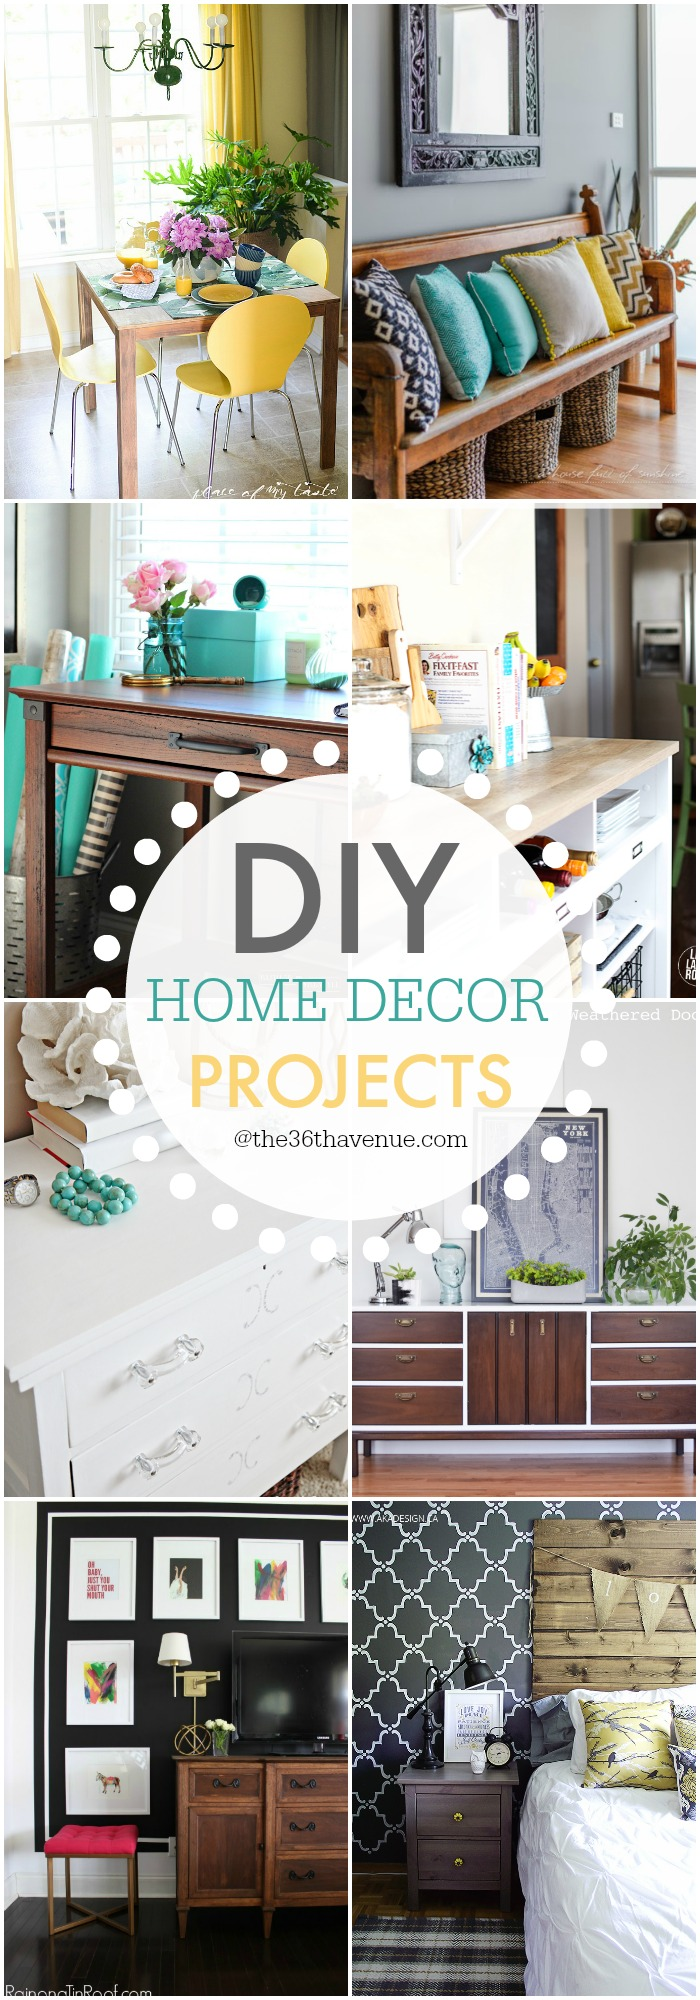 The 36th avenue diy home decor projects and ideas the for Home design ideas themes